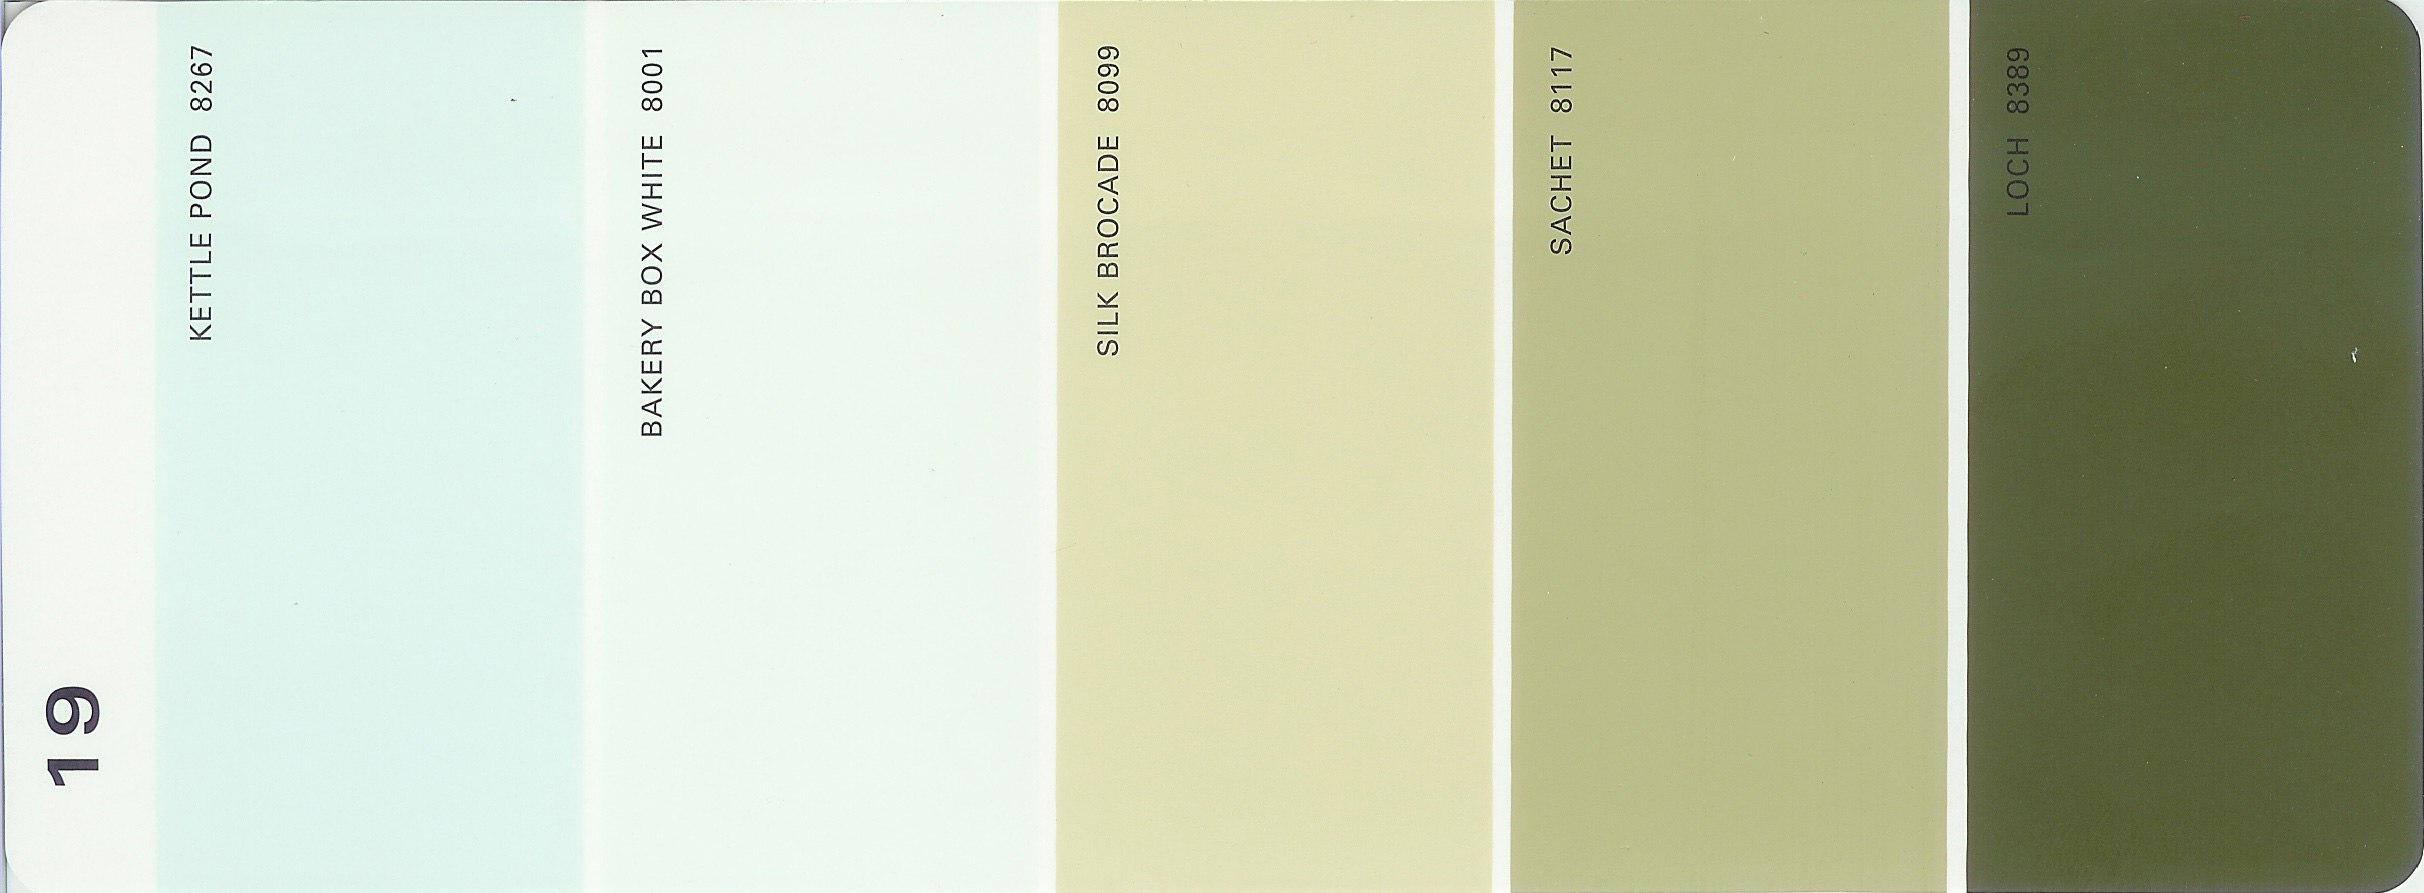 Martha stewart paint 5 color palette card 19 for Paint color palette